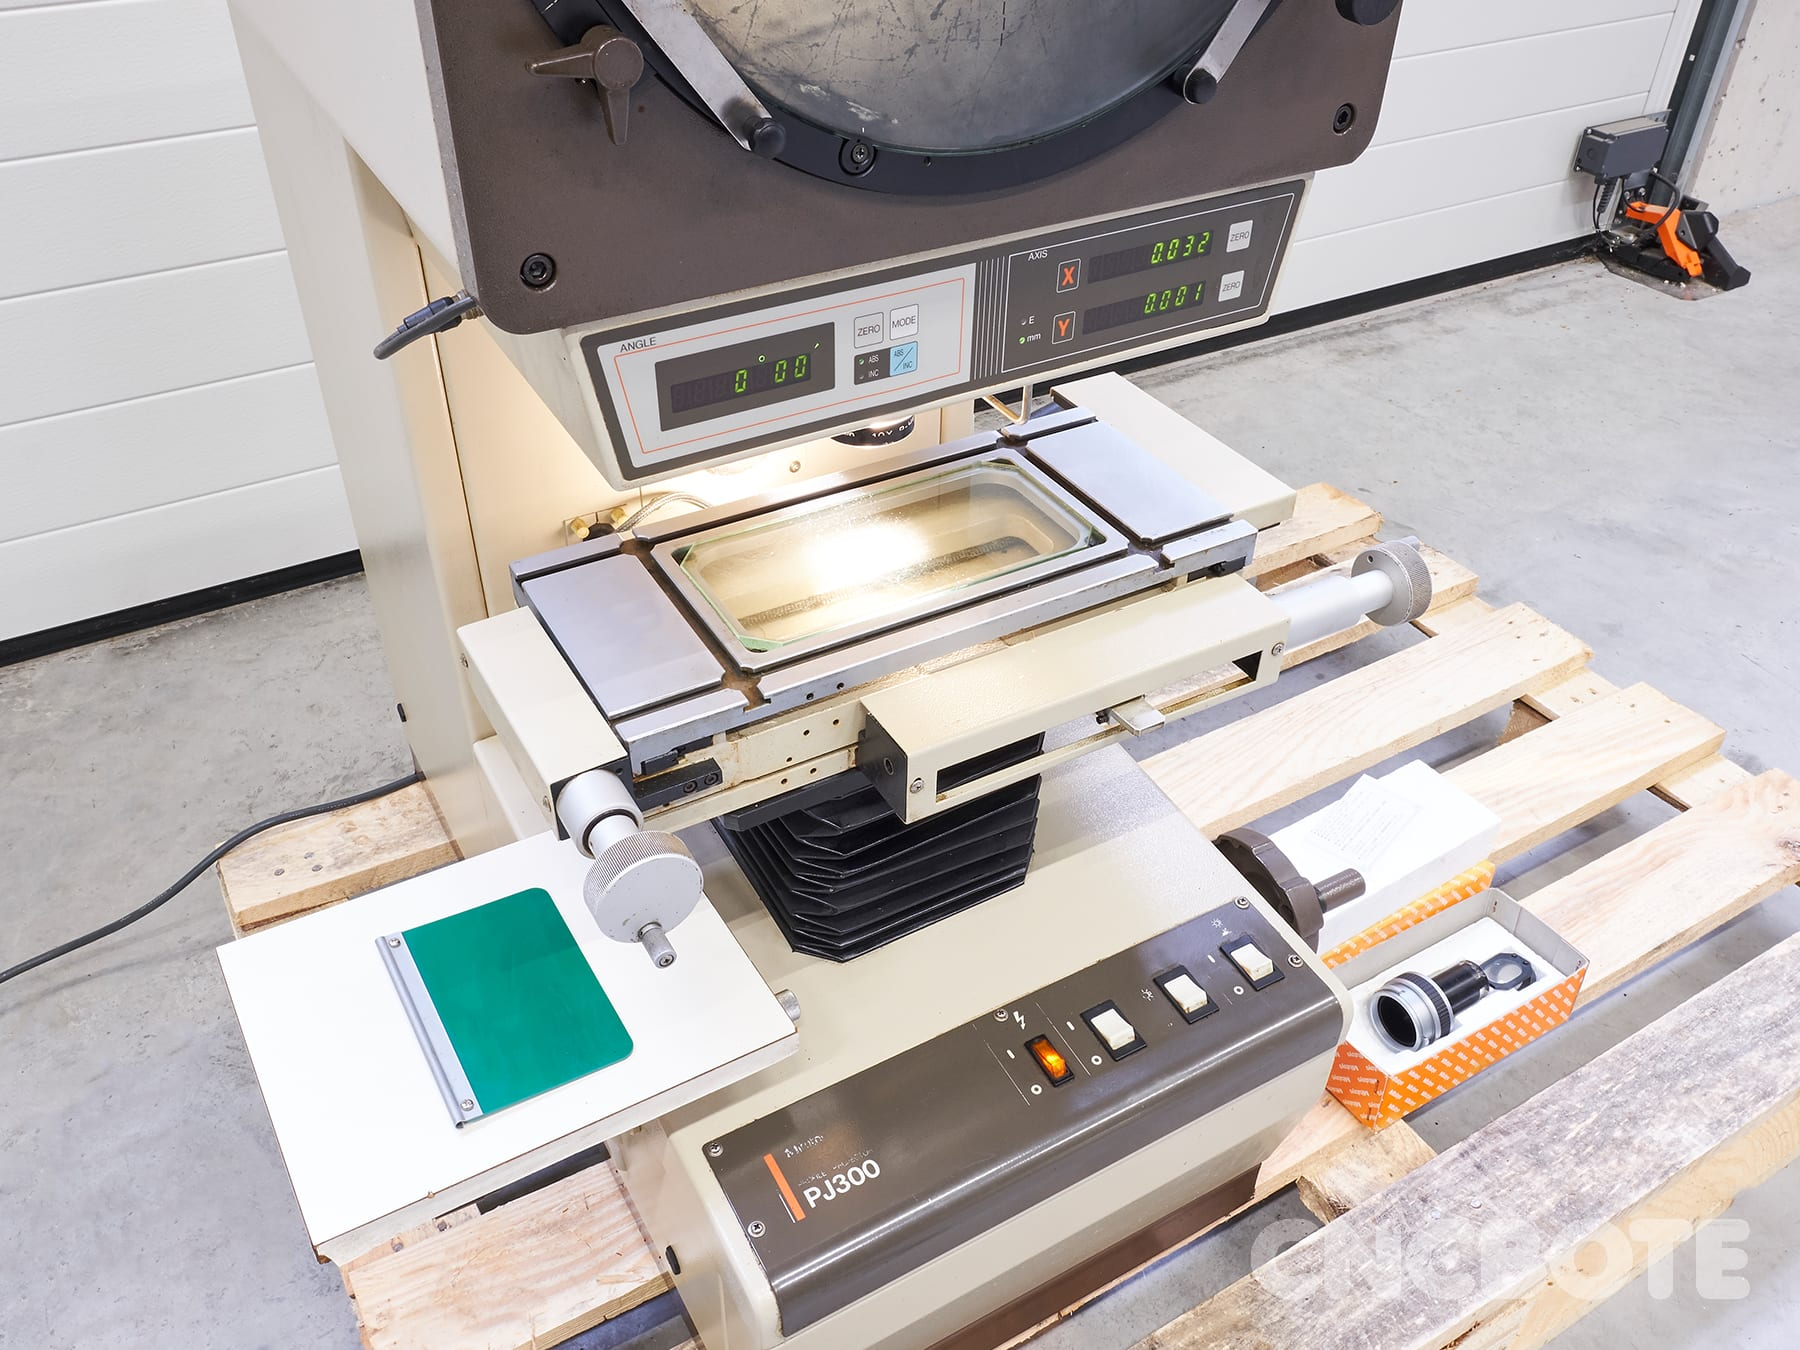 Mitutoyo PJ300 Profile Projector - Buy Used From CNC BOTE